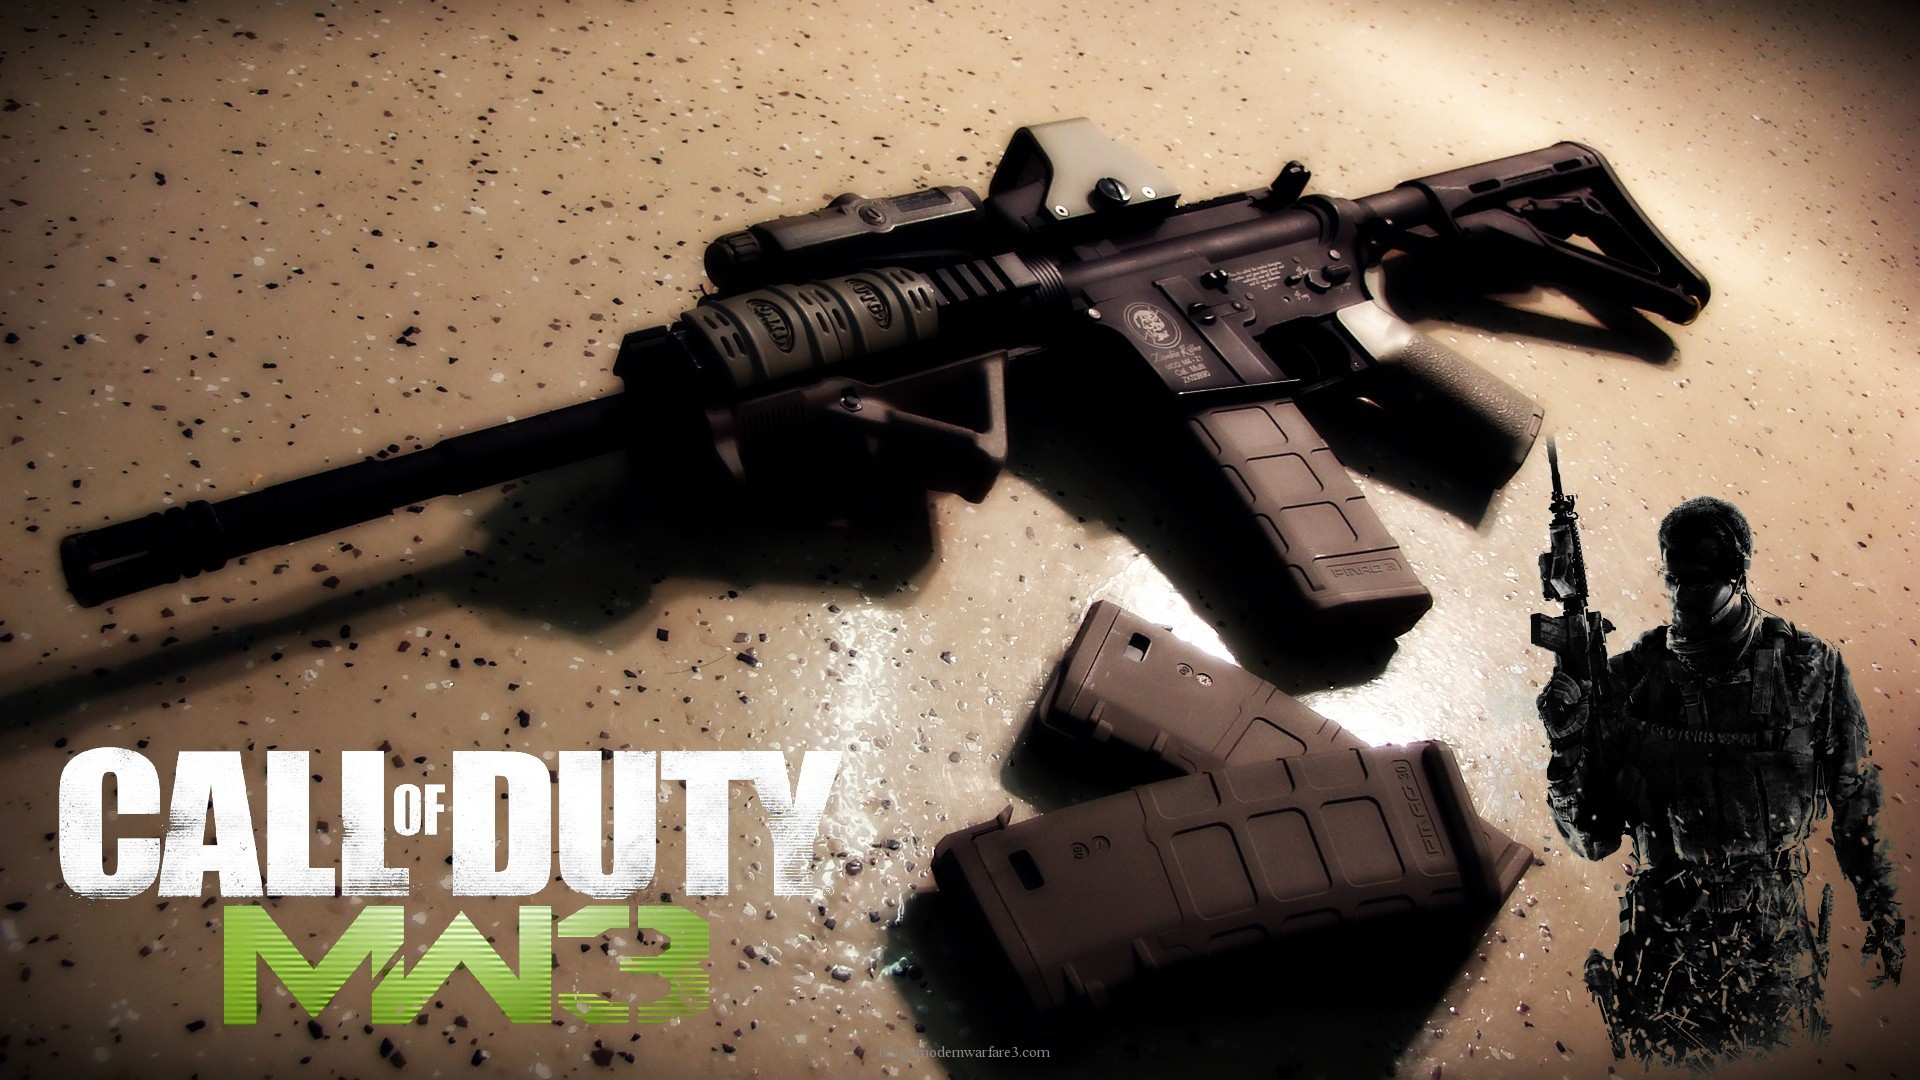 1920x1200 Modern Warfare 3 Images Mw3 Wallpapers HD Wallpaper And Background Photos